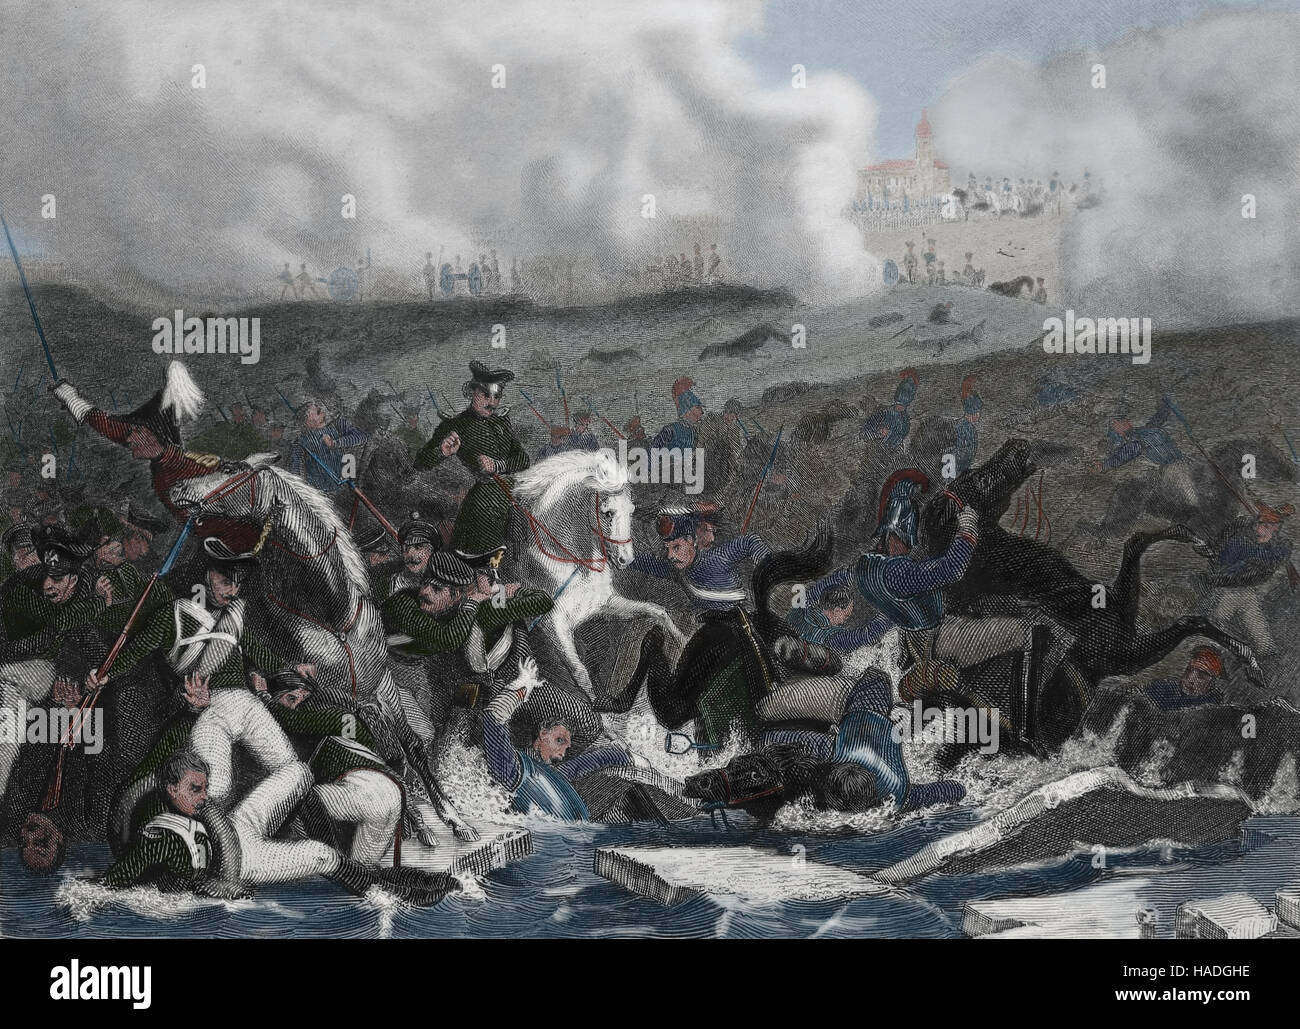 Battle of Austerlitz or Battle of 3 Emperors. 2 Decembre 1805. Napoleonic Wars. Engraving. 19th century. Later colouration. - Stock Image